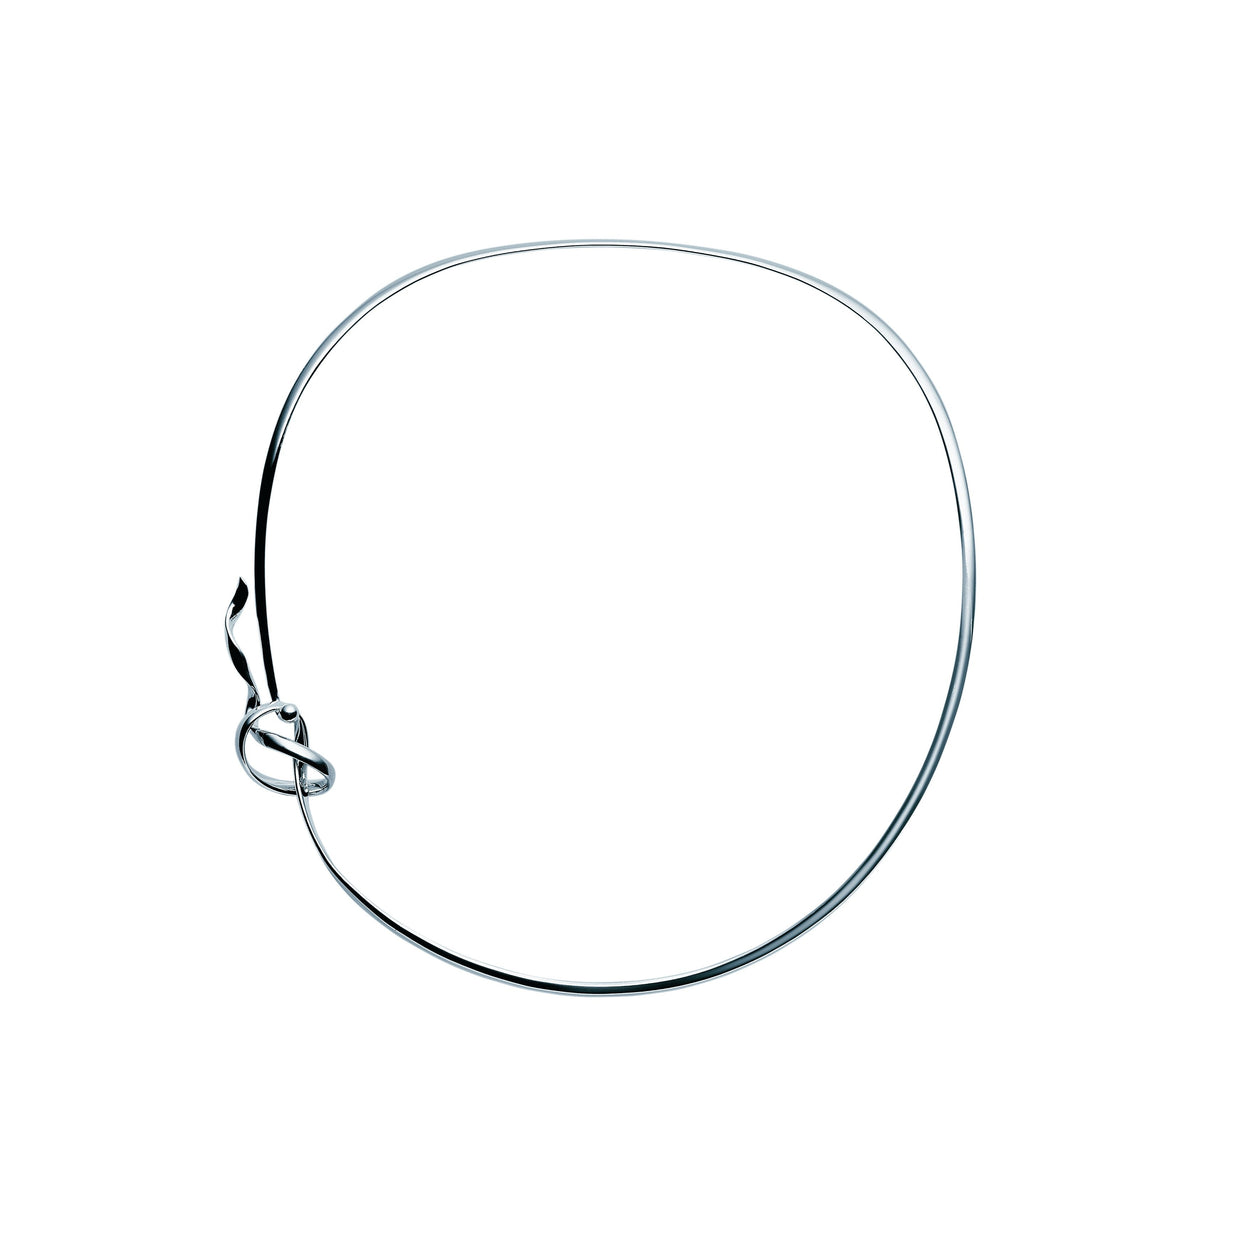 Georg Jensen Forget Me Knot Neckring in Sterling Silver - Hamilton & Inches